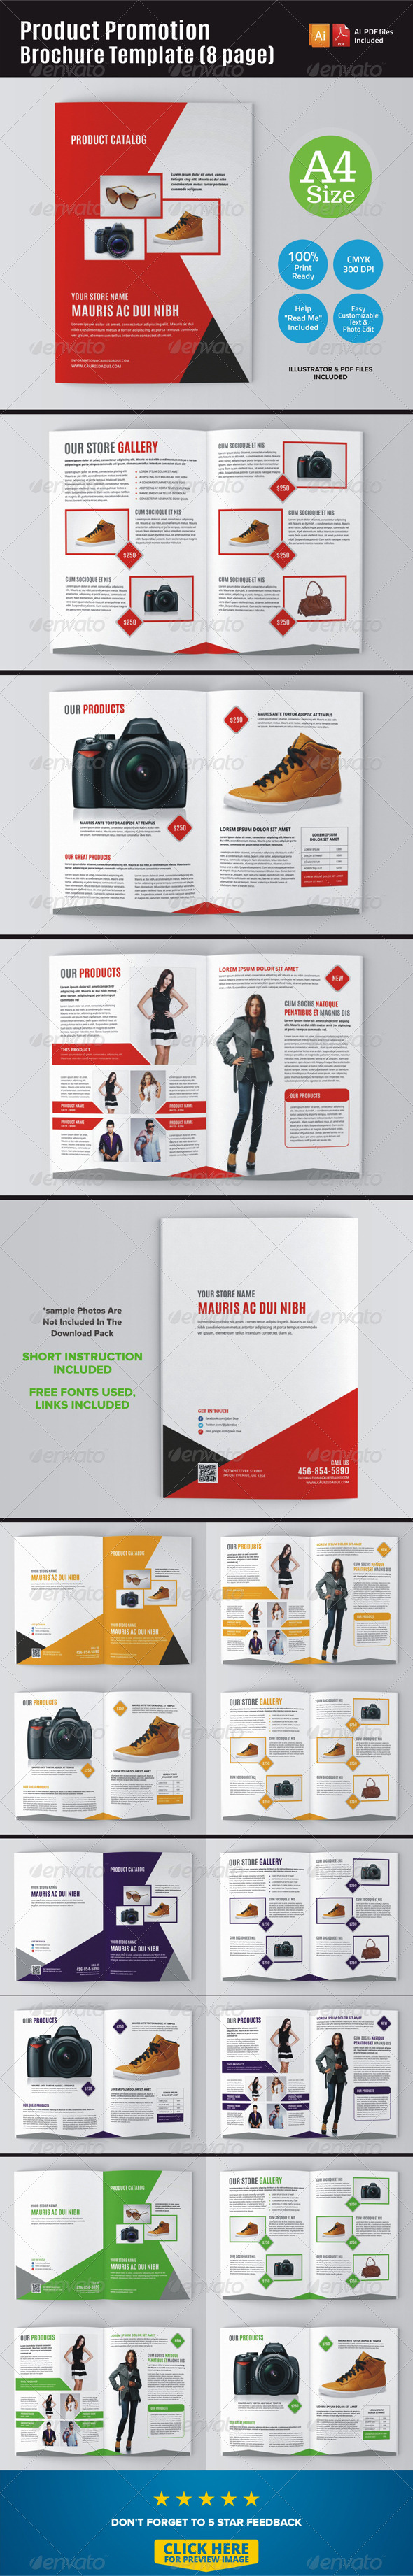 GraphicRiver Product Promotion Brochure Template 8 Page 7264778